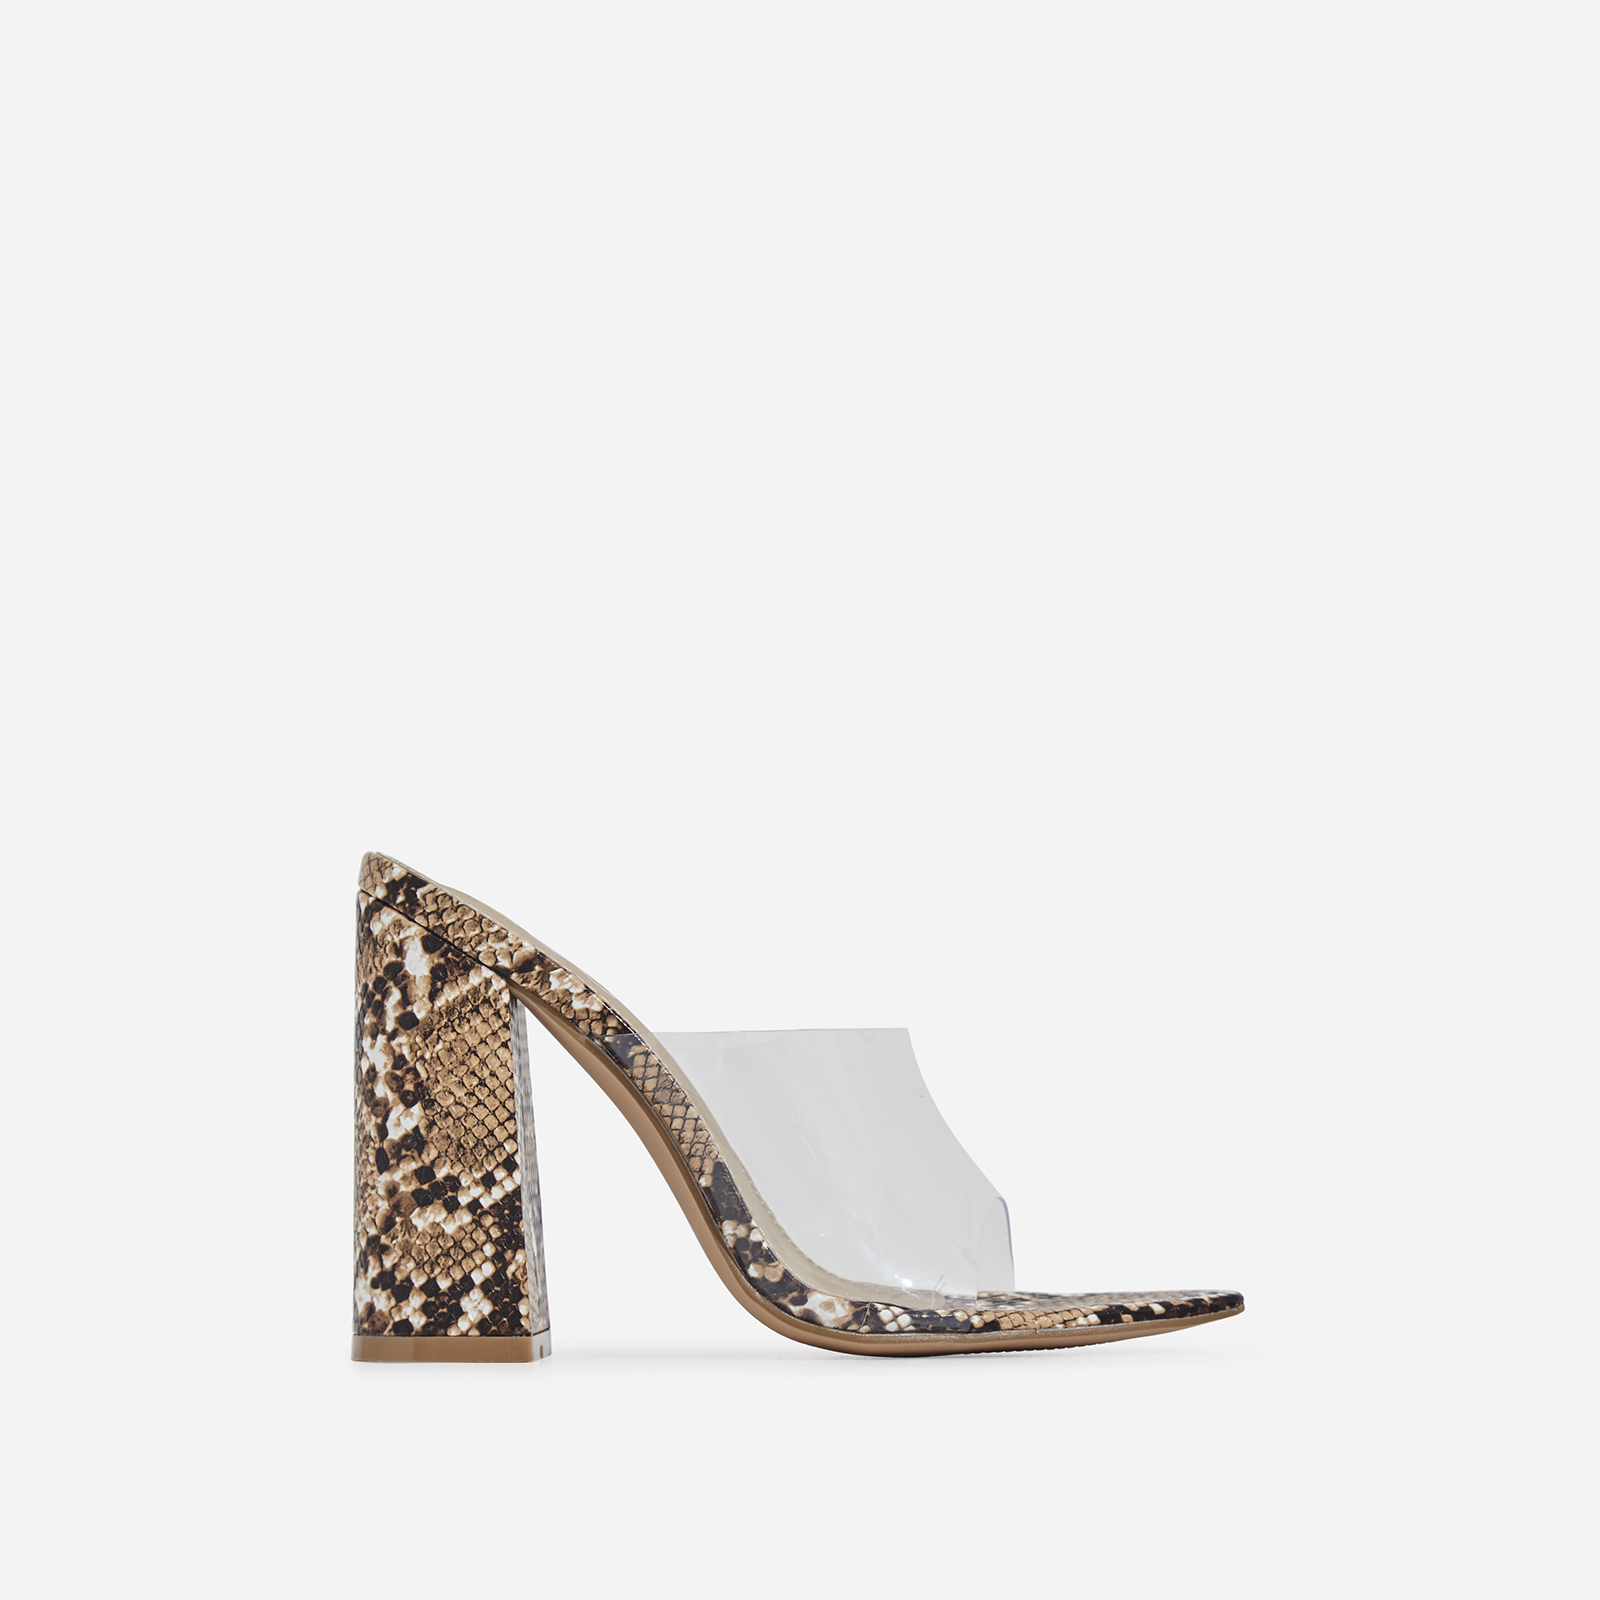 Kelby Pointed Peep Toe Block Heel Mule In Nude Snake Print Faux Leather